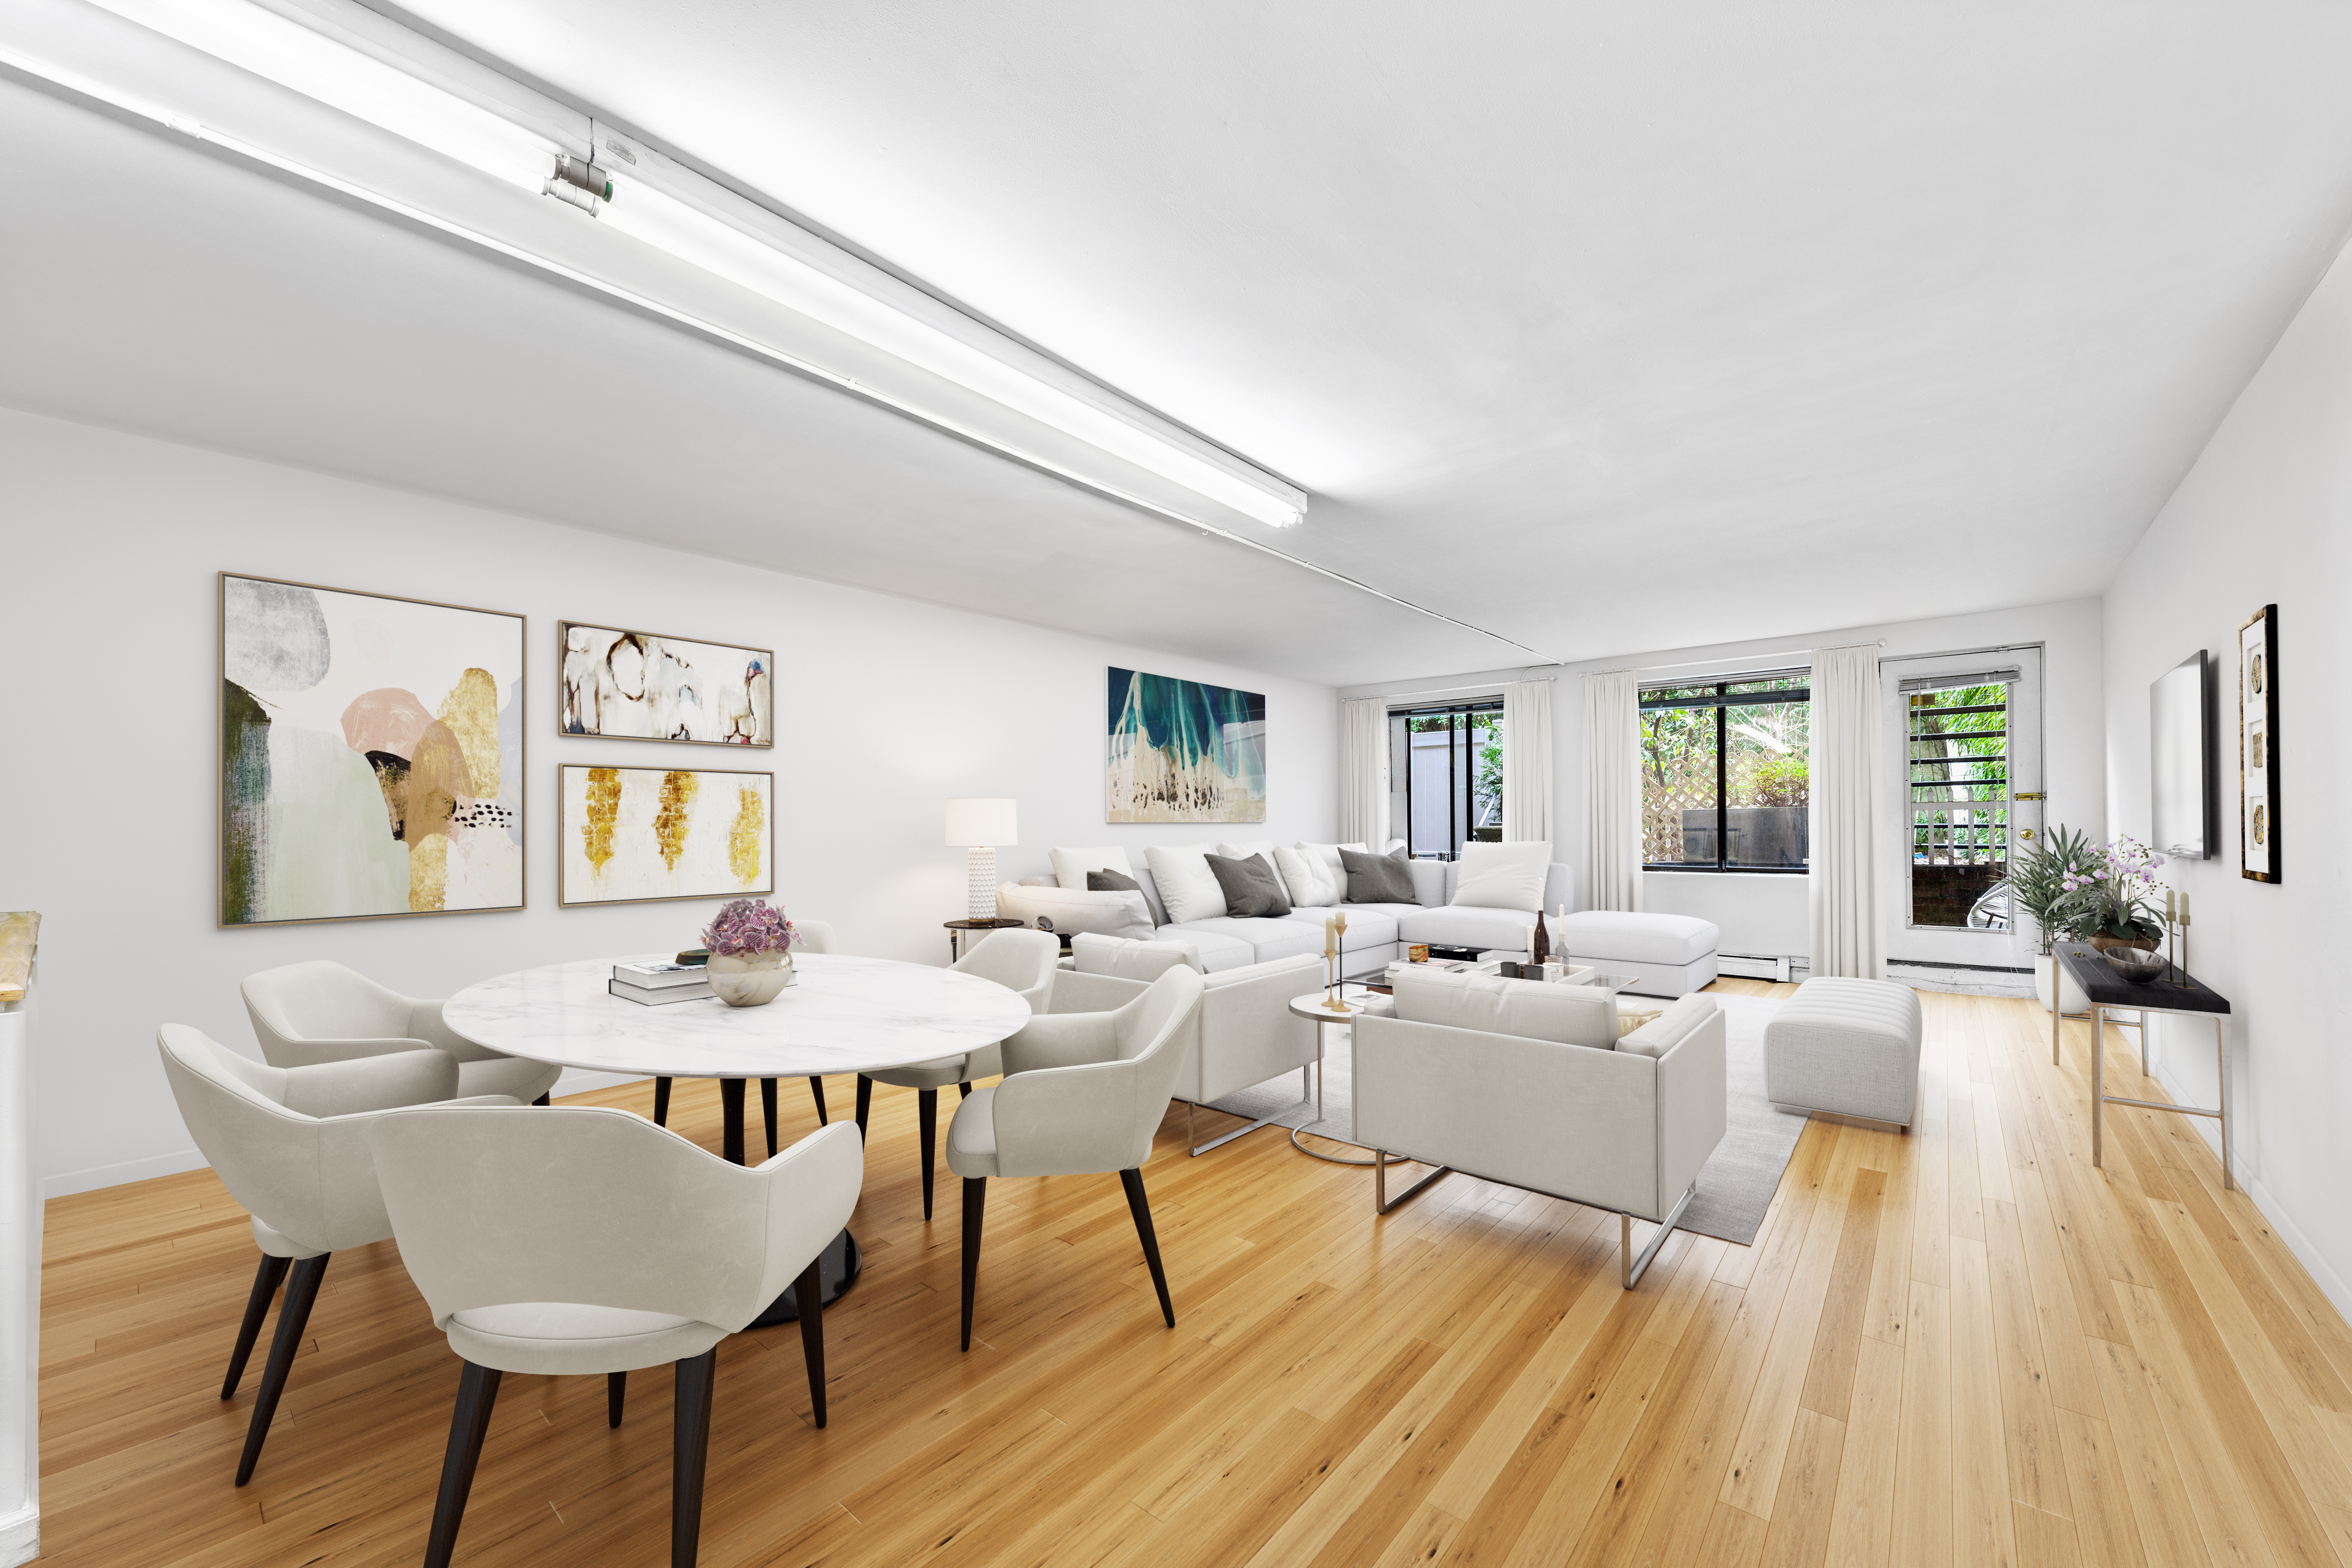 primary photo for 216 East 75th Street MAIS-WEST, New York, NY 10021, US